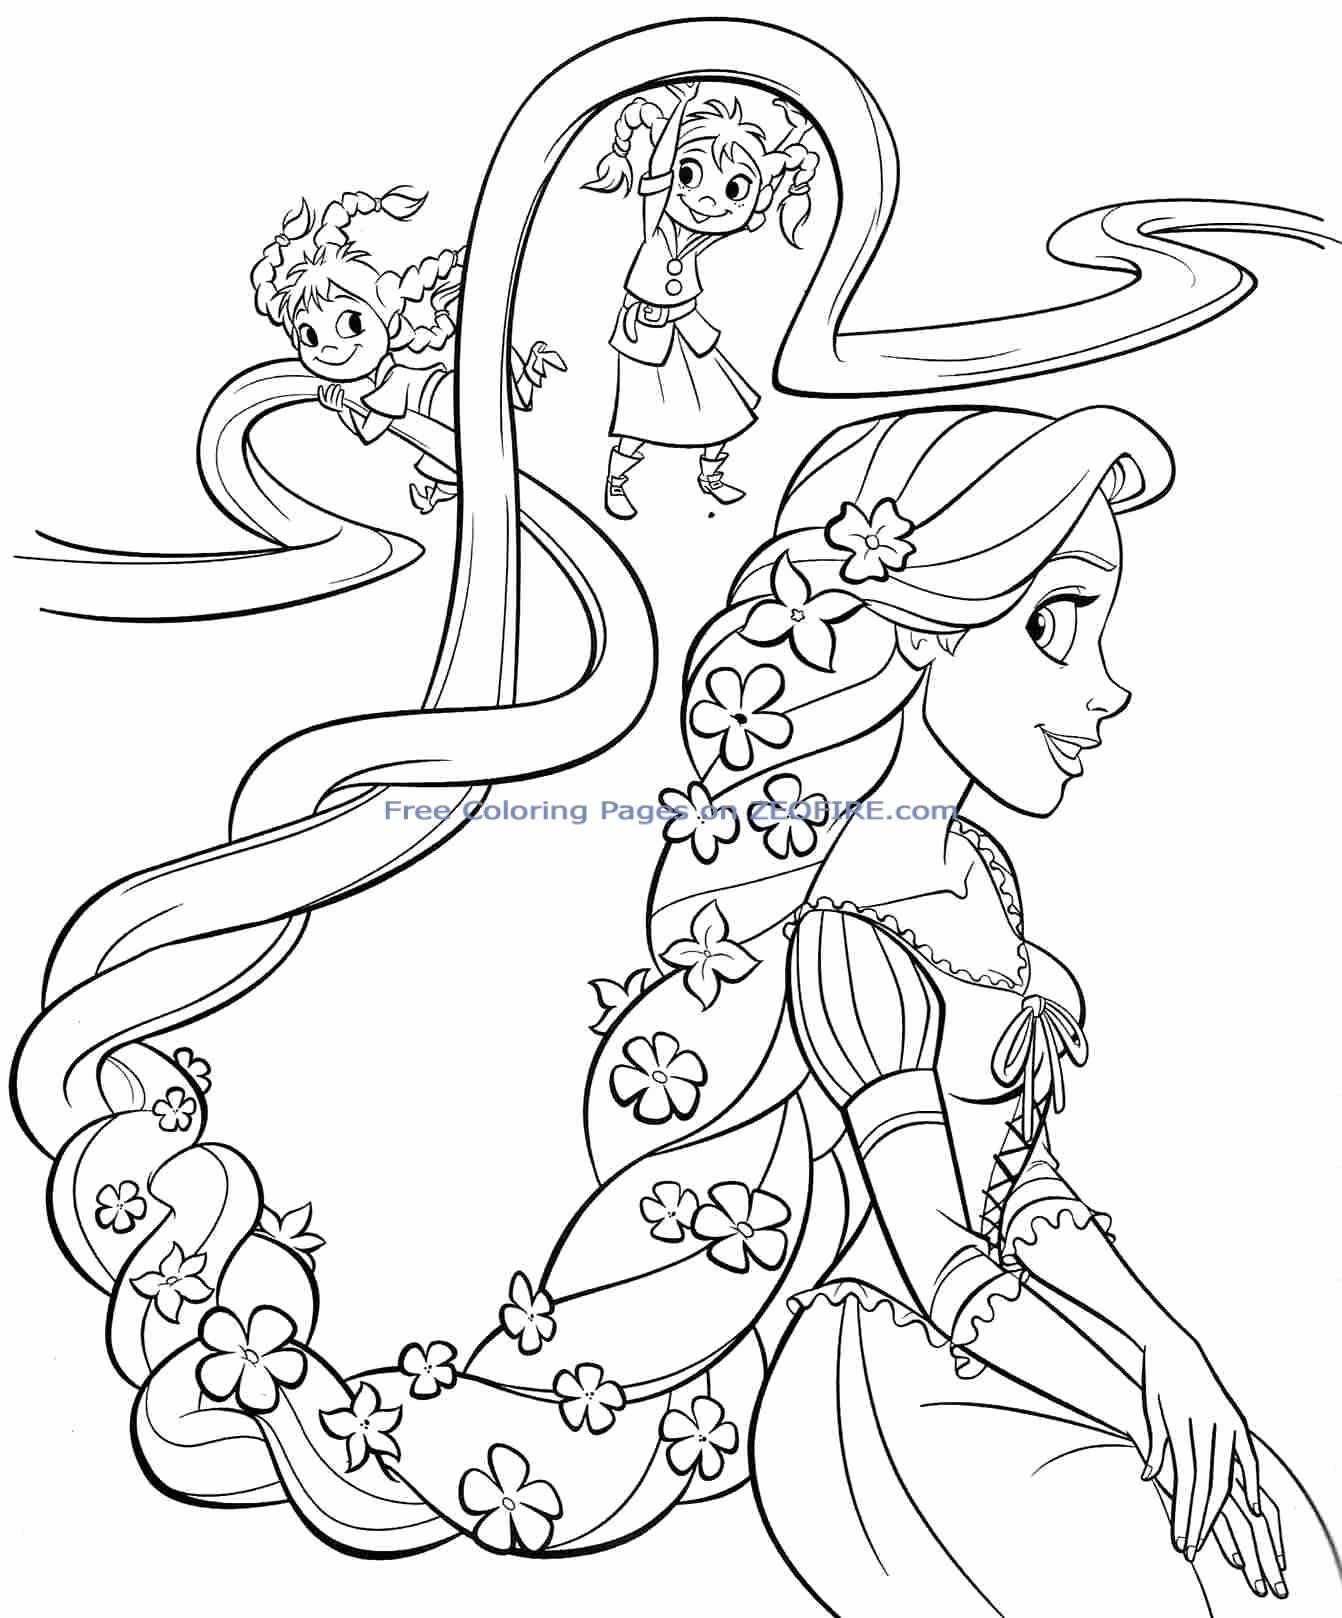 Disney Coloring Sheets Pdf Luxury Coloring Sheets 42 Staggering Printable Princess Coloring Rapunzel Warna Buku Mewarnai